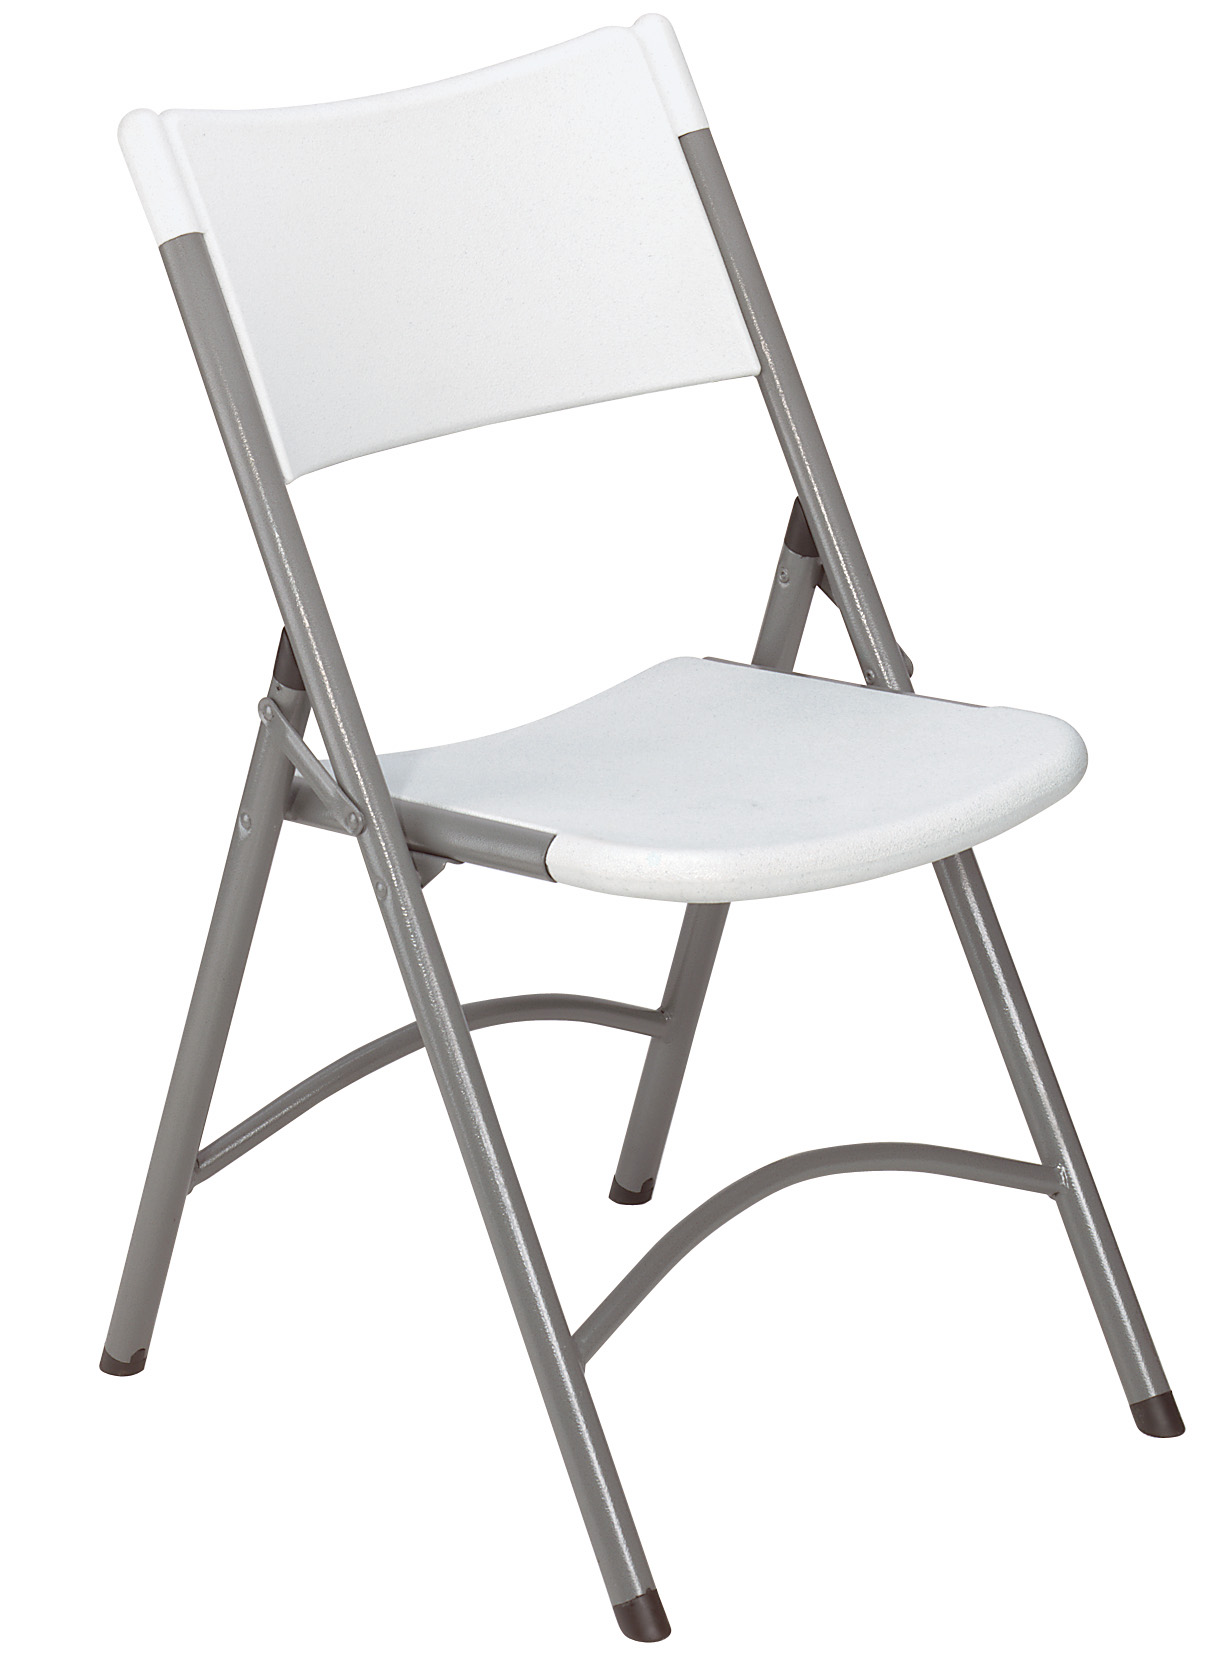 folding chair dolly high replacement cover graco vertical cart handtrucks2go